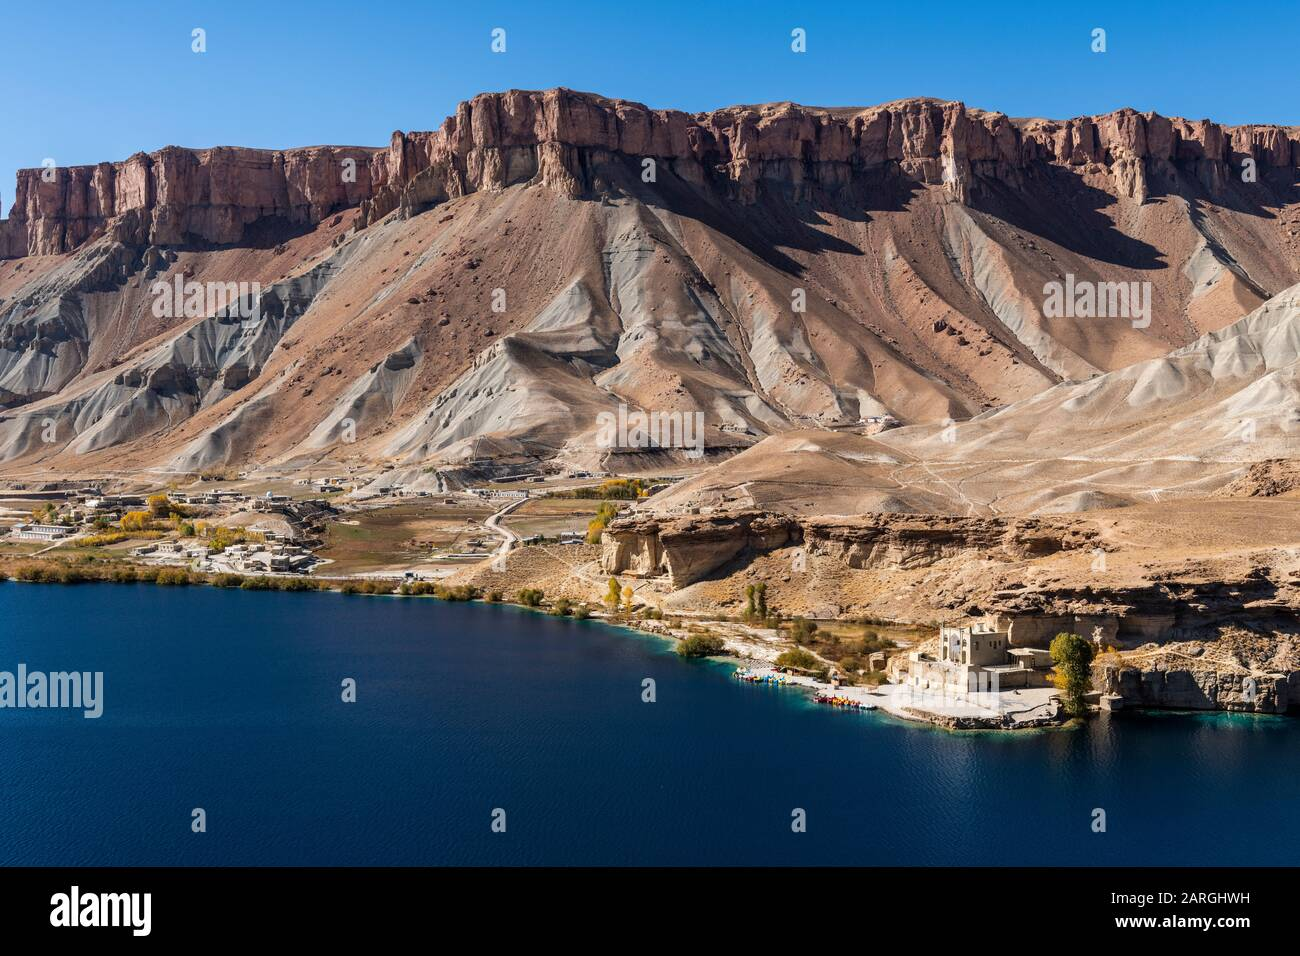 View over the deep blue lakes of the Band-E-Amir National Park, Afghanistan, Asia Stock Photo